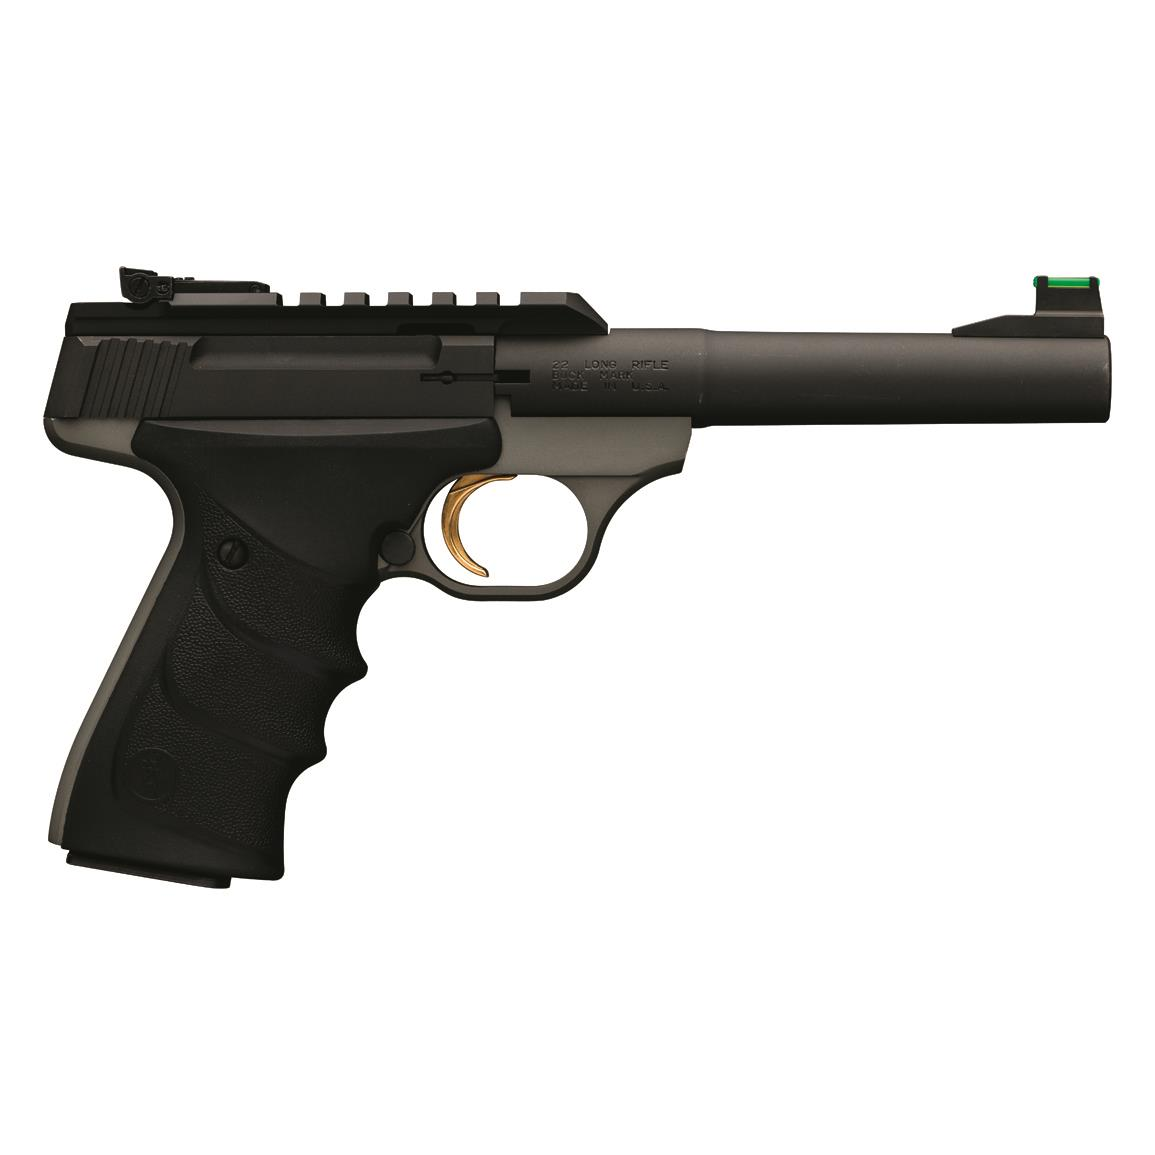 "Browning Buck Mark Plus Practical URX, Semi-Automatic, .22LR, 5.5"" Barrel, 10+1 Rounds"